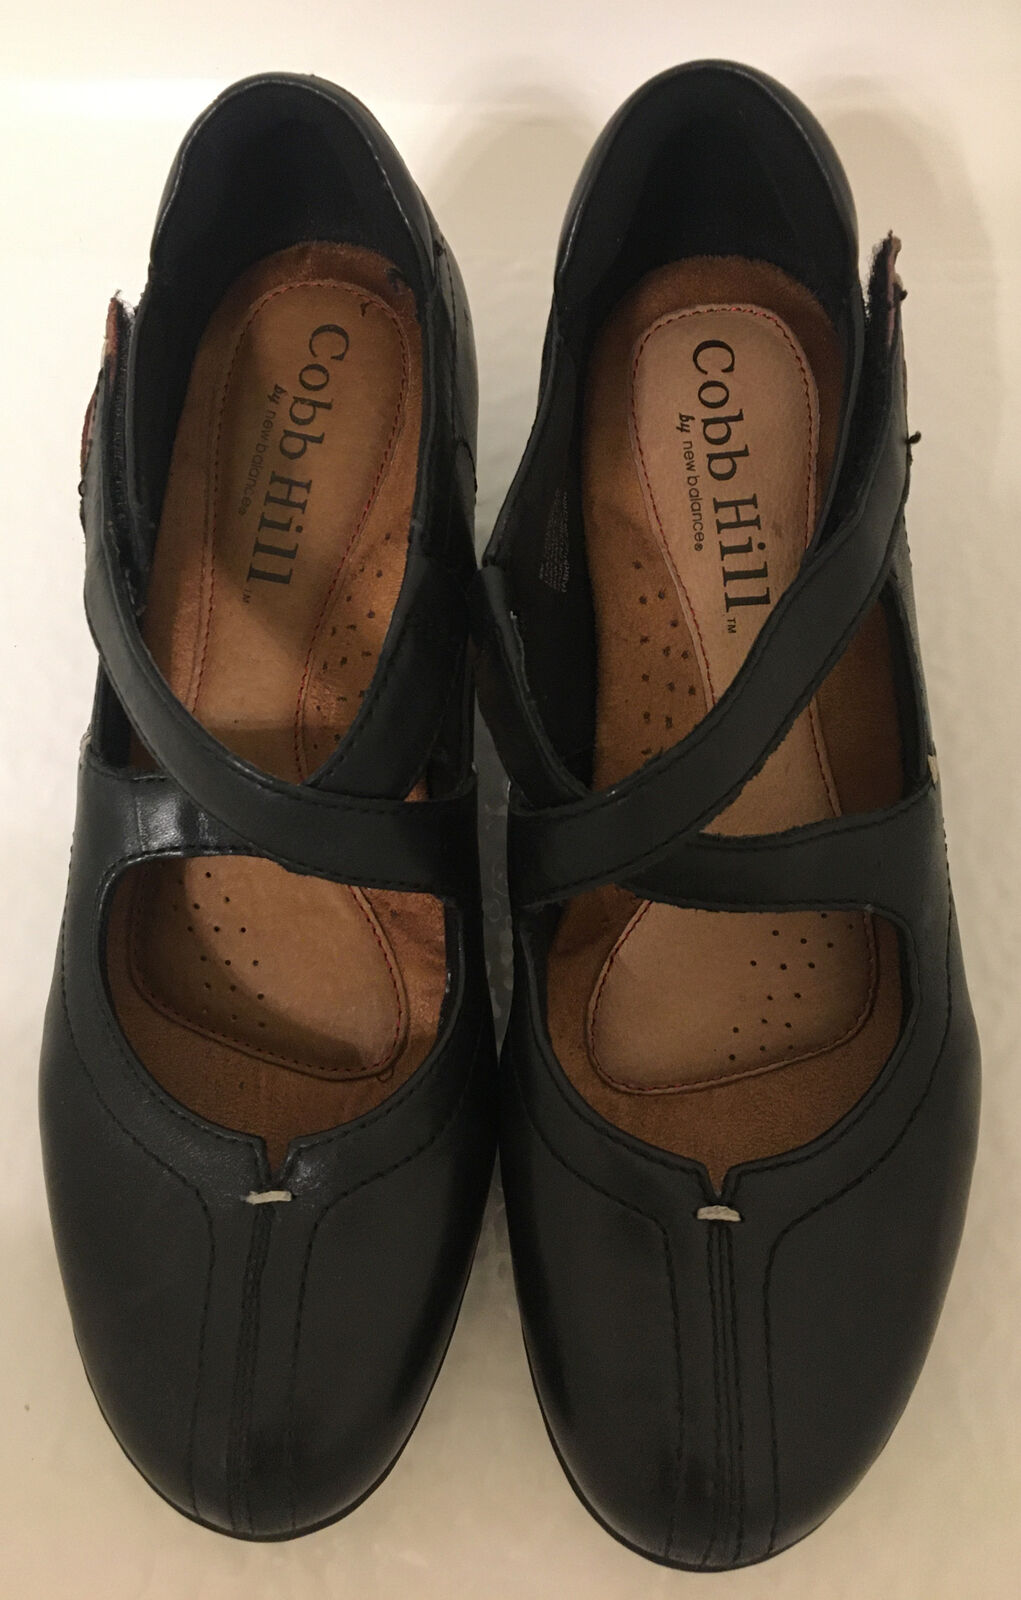 Cobb Hill Avery Ankle Bootie Womens 8 M Cap Toe Leather Black Cross Straps